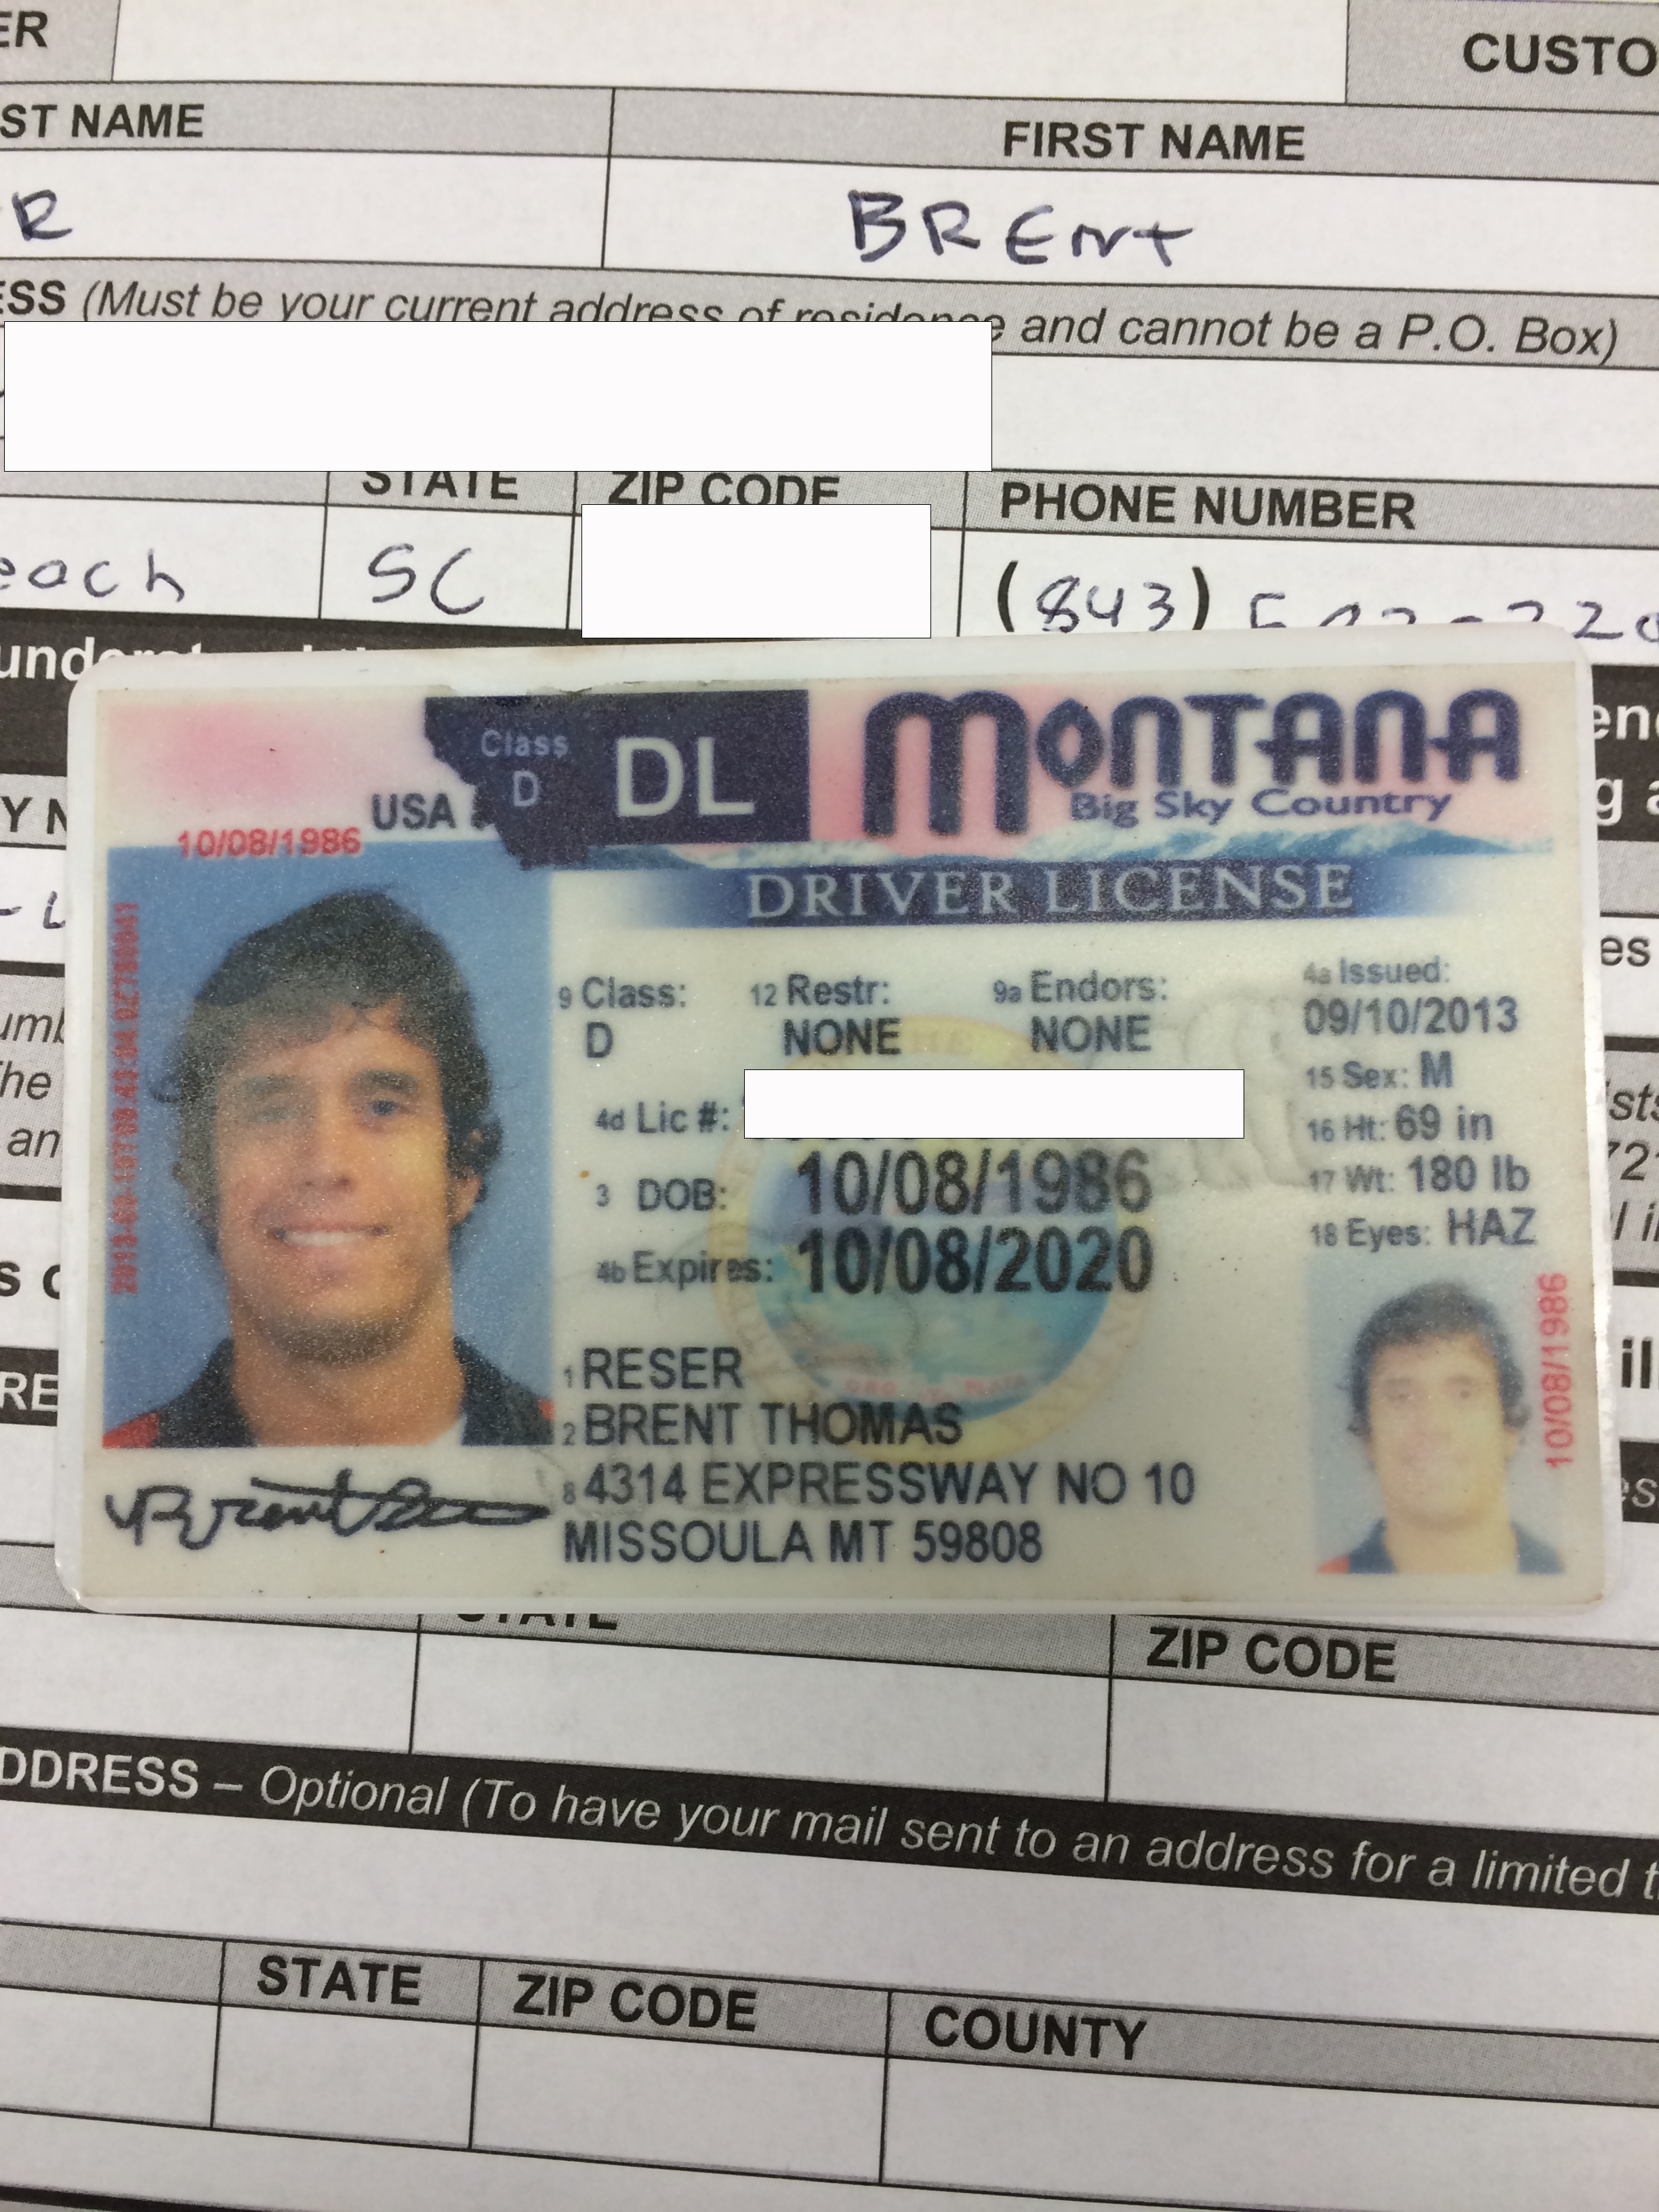 I will never see this license again.